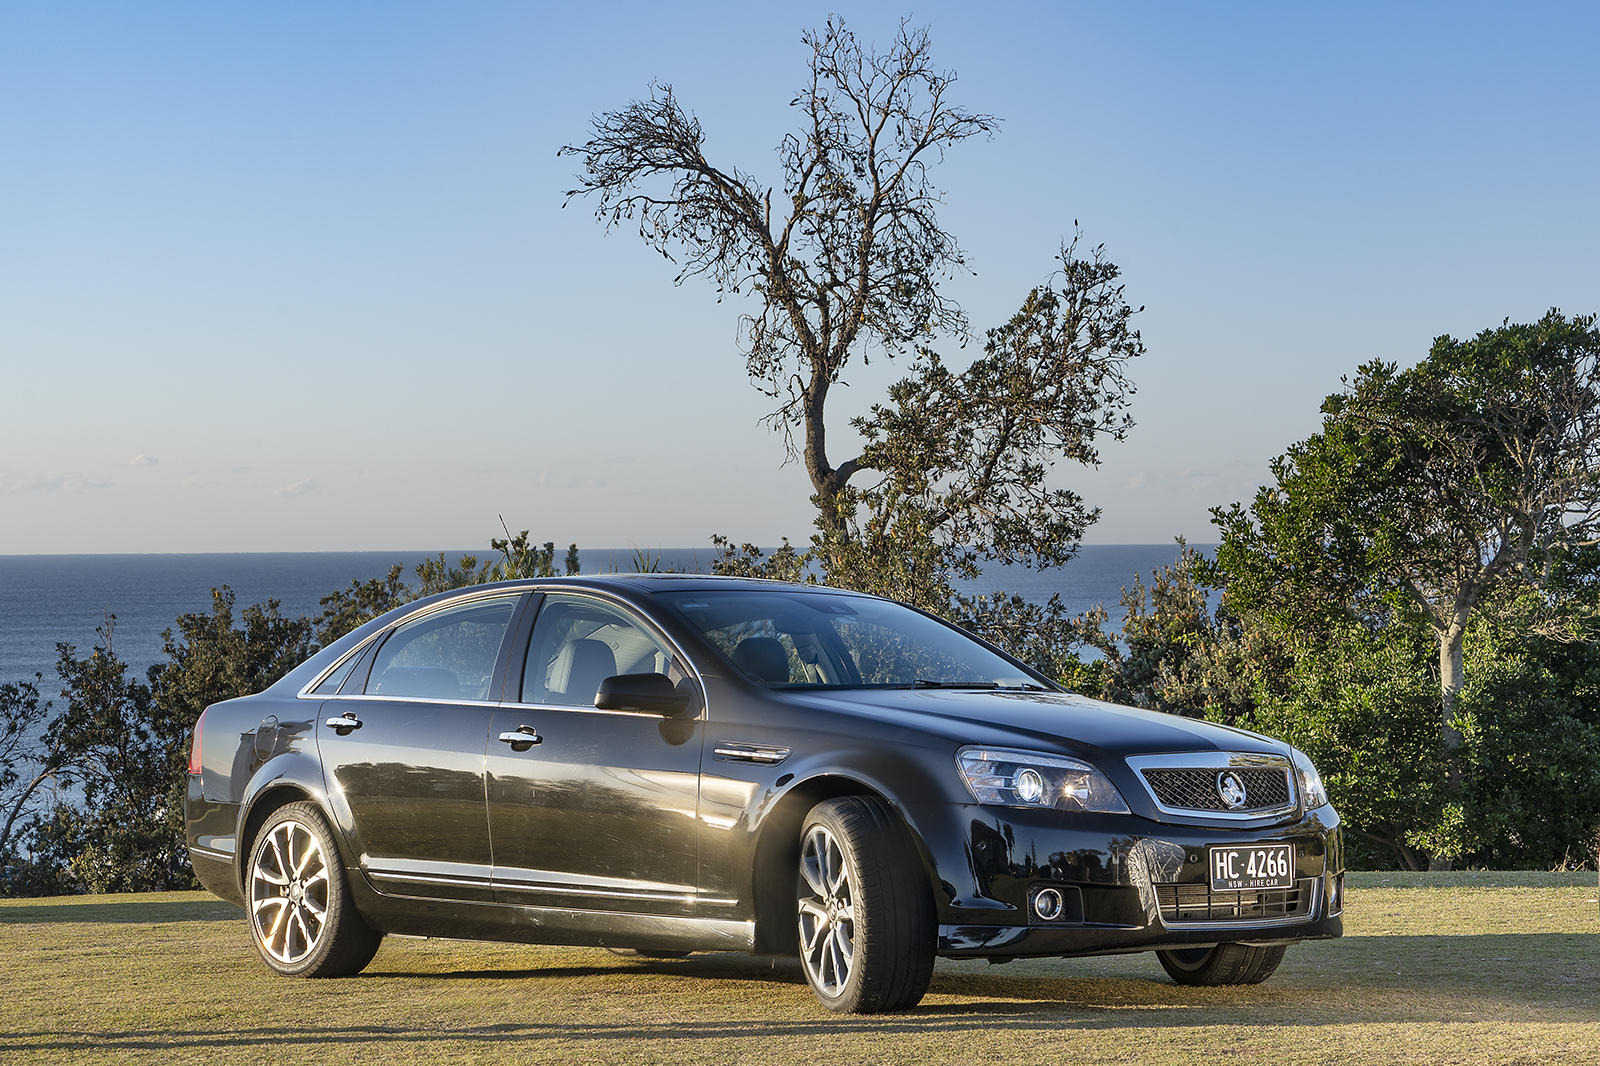 Holden Caprice V8 Sedan  / Coolangatta QLD 4225, Australia   / Hourly (Wedding) AUD$ 150.00  / Hourly (Other services) AUD$ 150.00  / Airport Transfer AUD$ 220.00